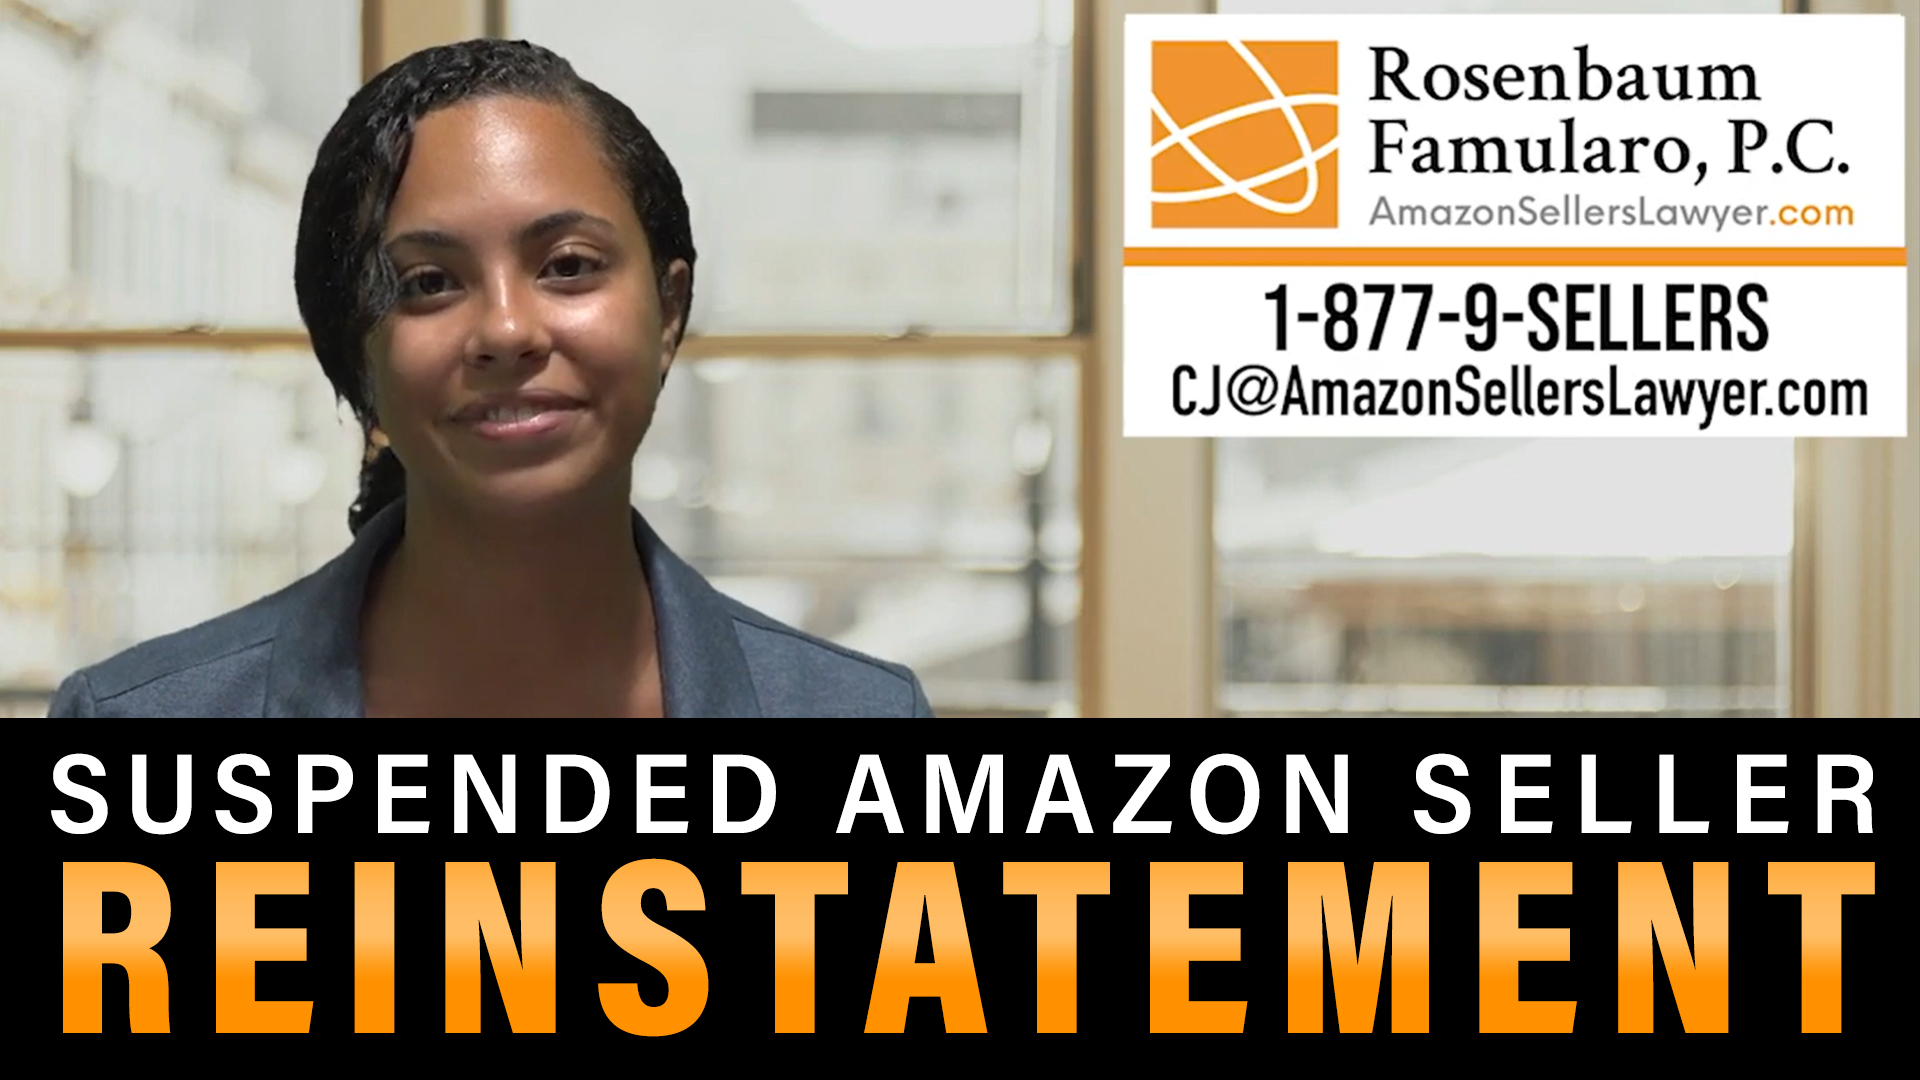 Amazon Seller Reinstatement after a 24-hour Dropshipping Performance Notification